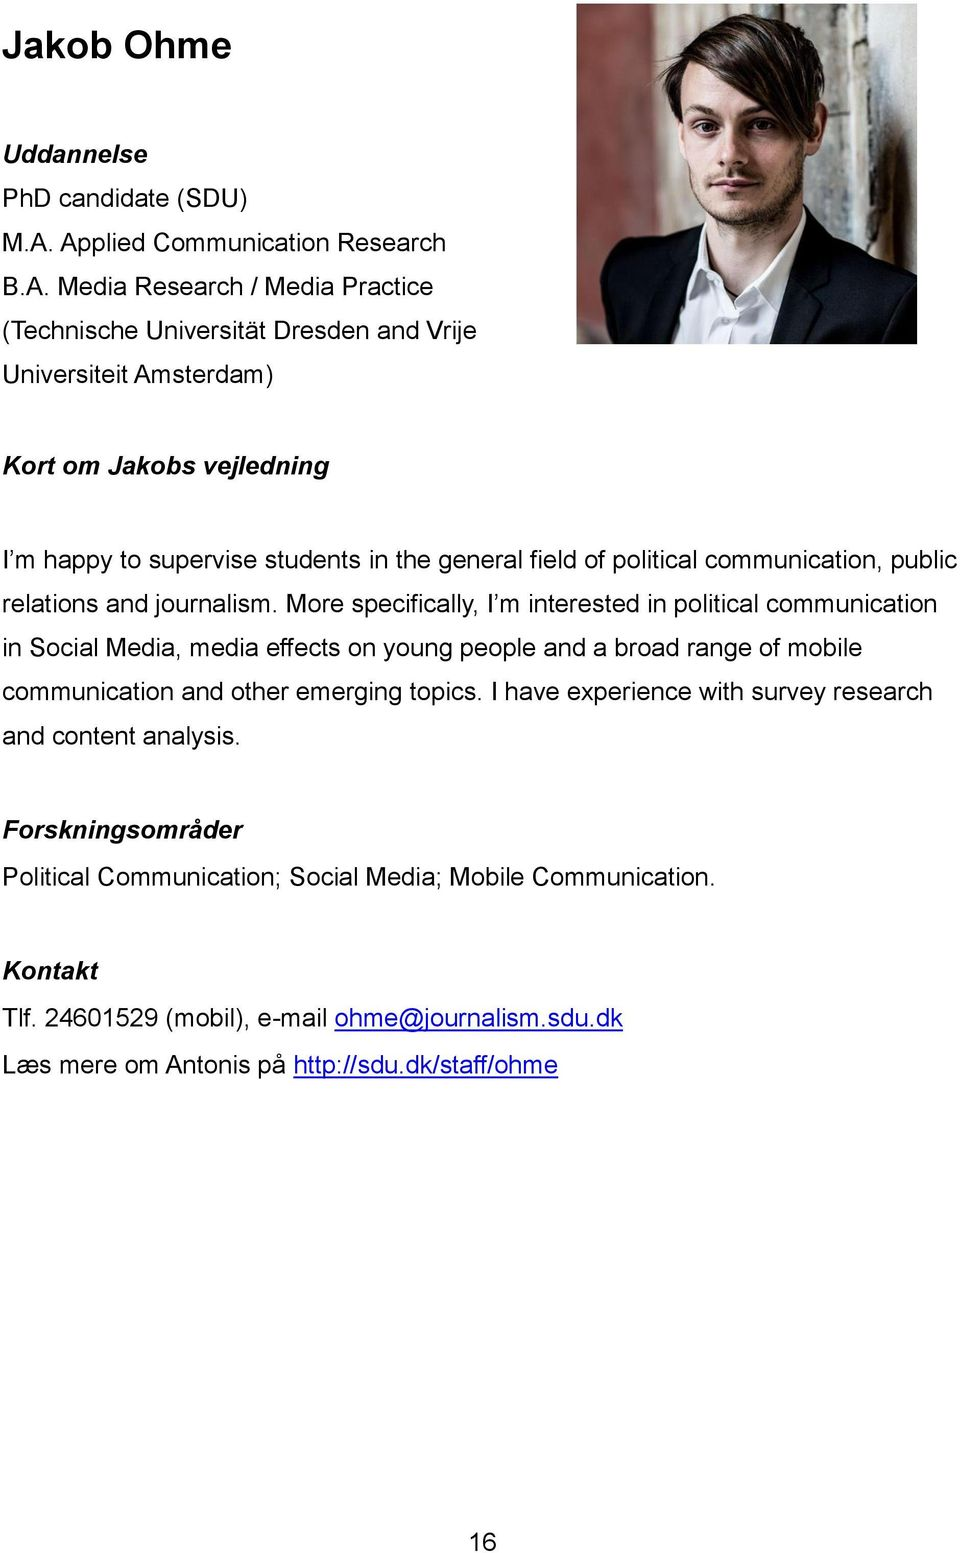 supervise students in the general field of political communication, public relations and journalism.